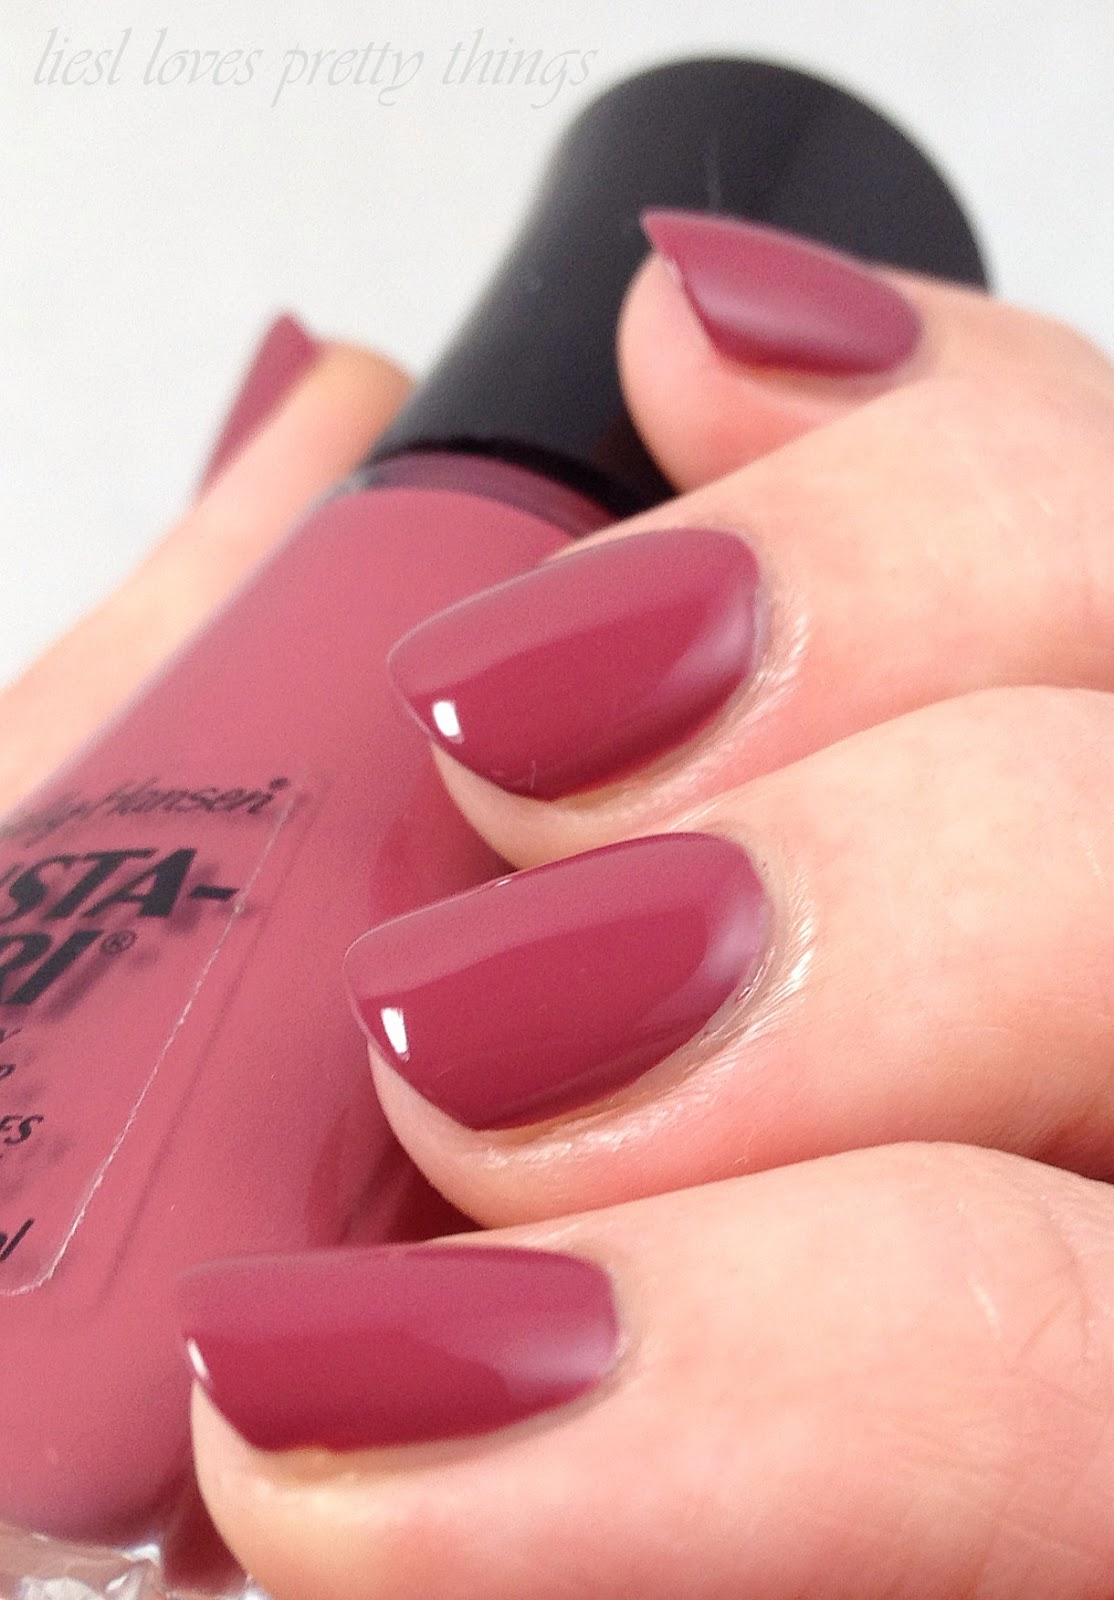 Pantone Color of the Year 2015 Marsala Sally Hansen Insta-Dri Expresso